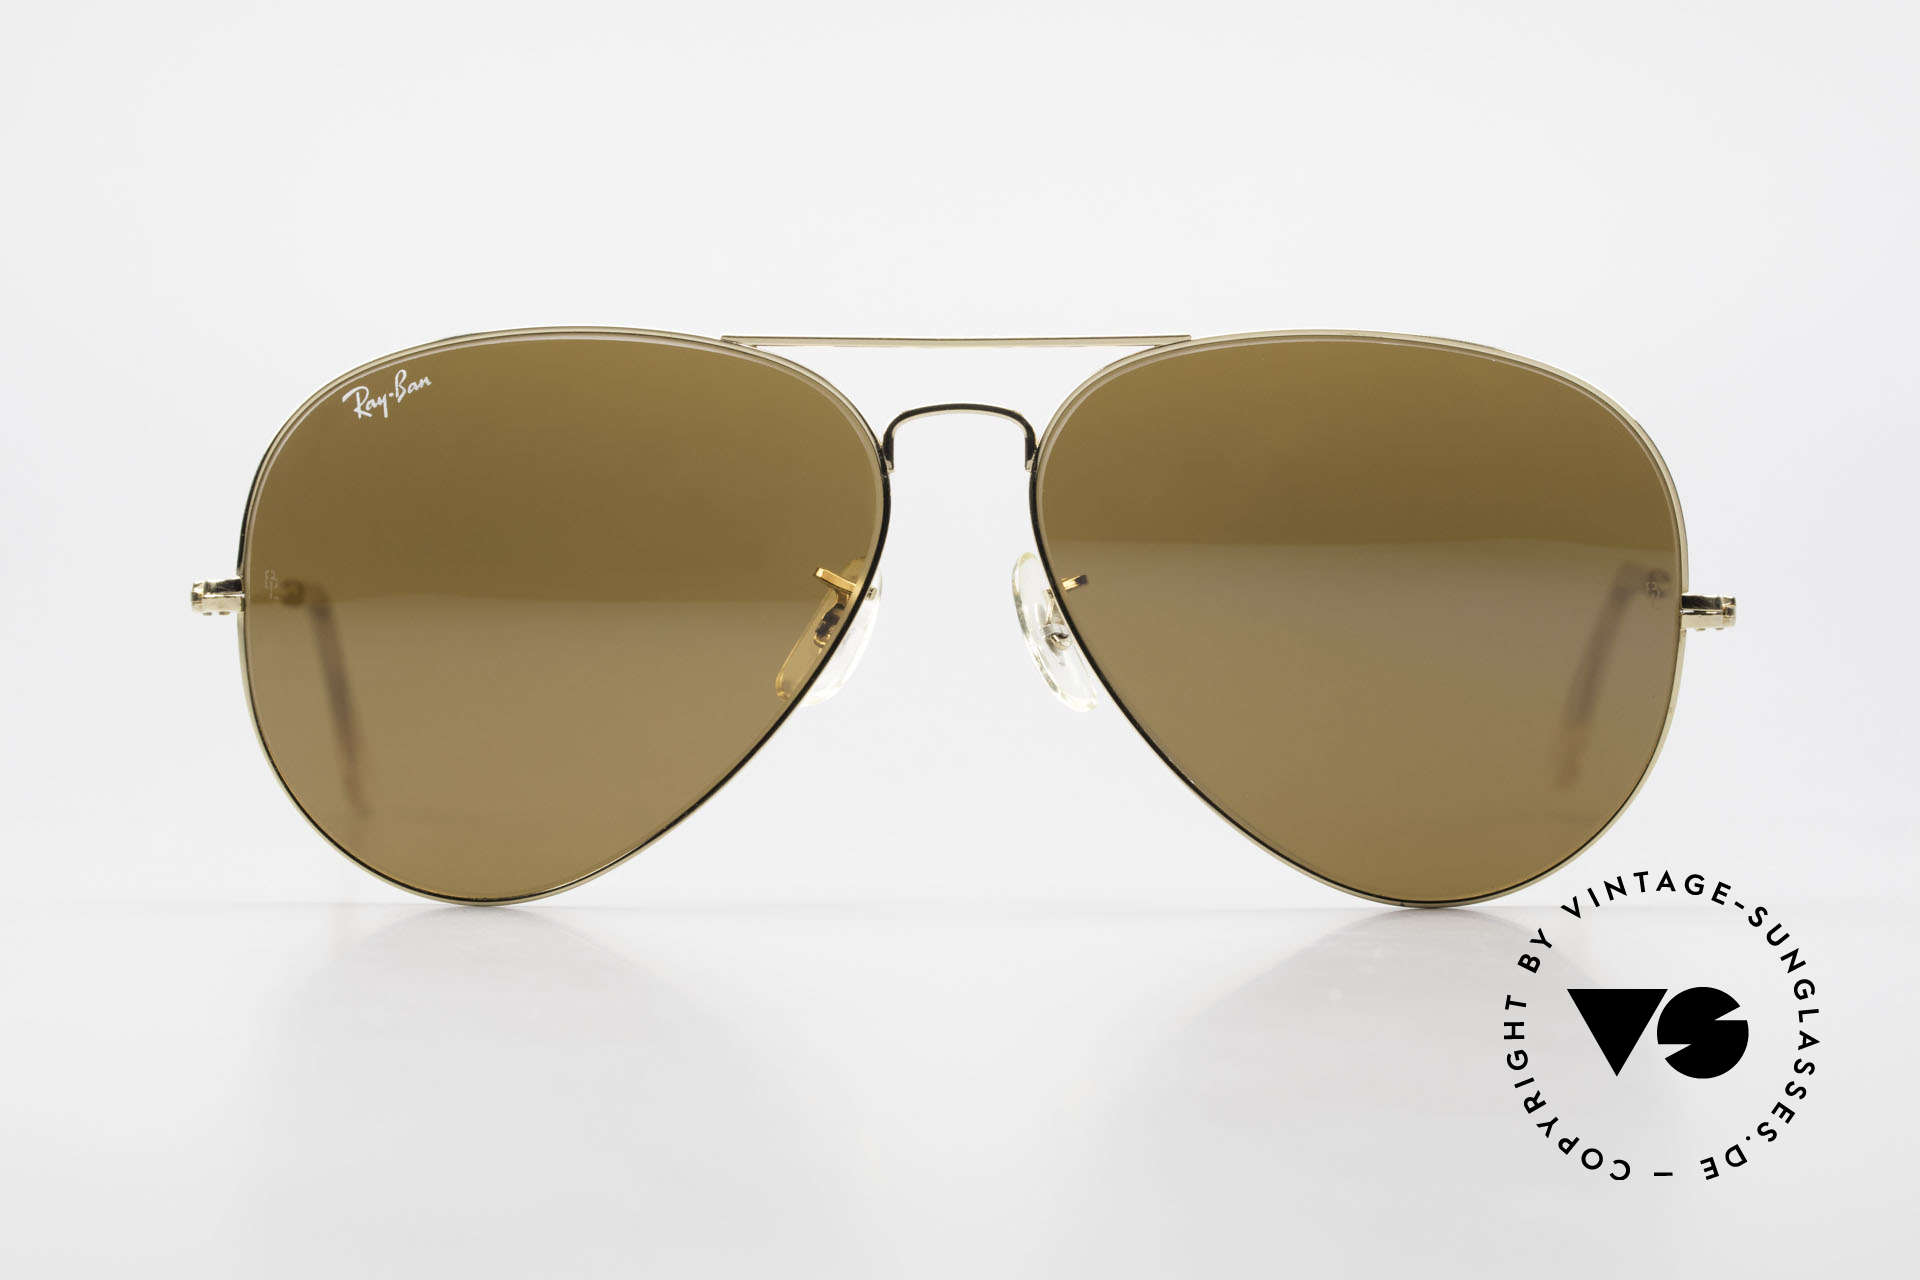 Ray Ban Large Metal II Old Ray-Ban B&L USA Shades, legendary aviator design in best quality (high-end), Made for Men